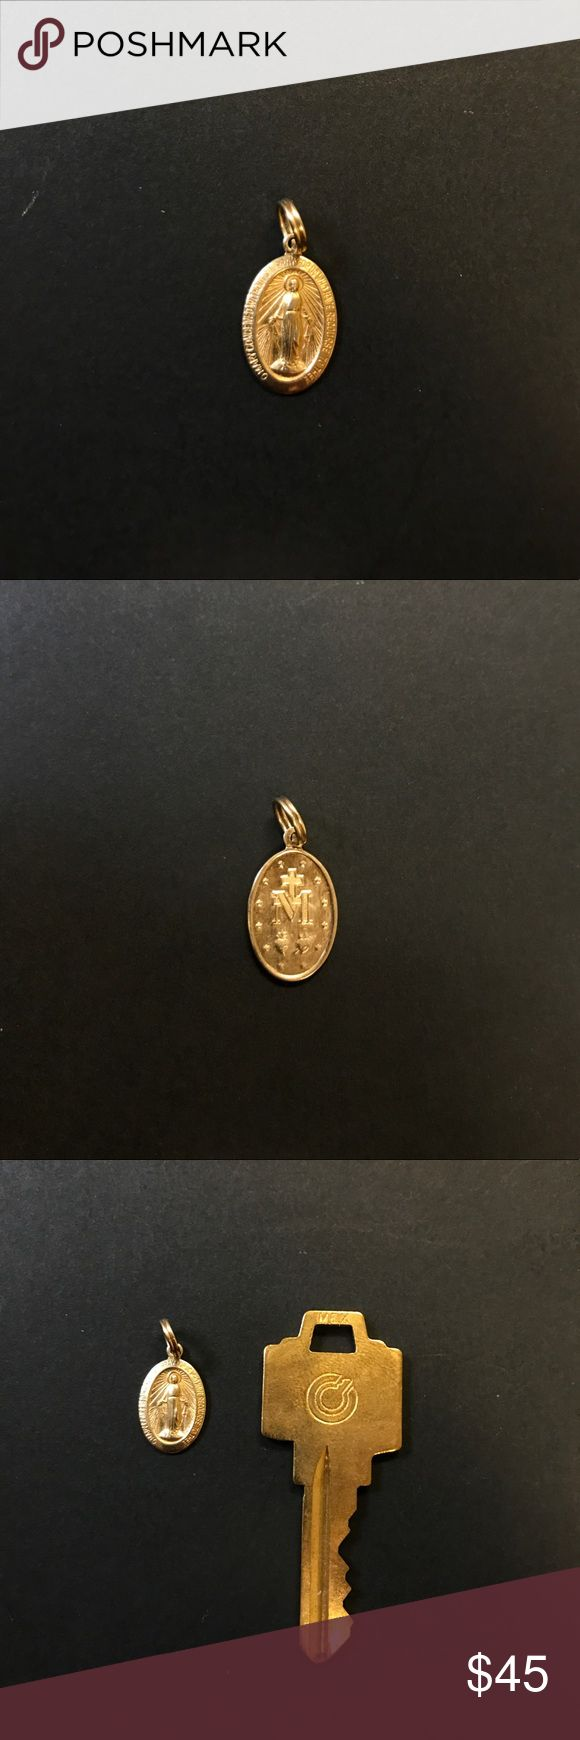 10K GOLD Lady of Guadalupe Pendant - With Receipt! 10K Gold Our Lady of Guadalupe Chain Pendant Charm  Purchased from Piercing Pagoda Accessories Jewelry